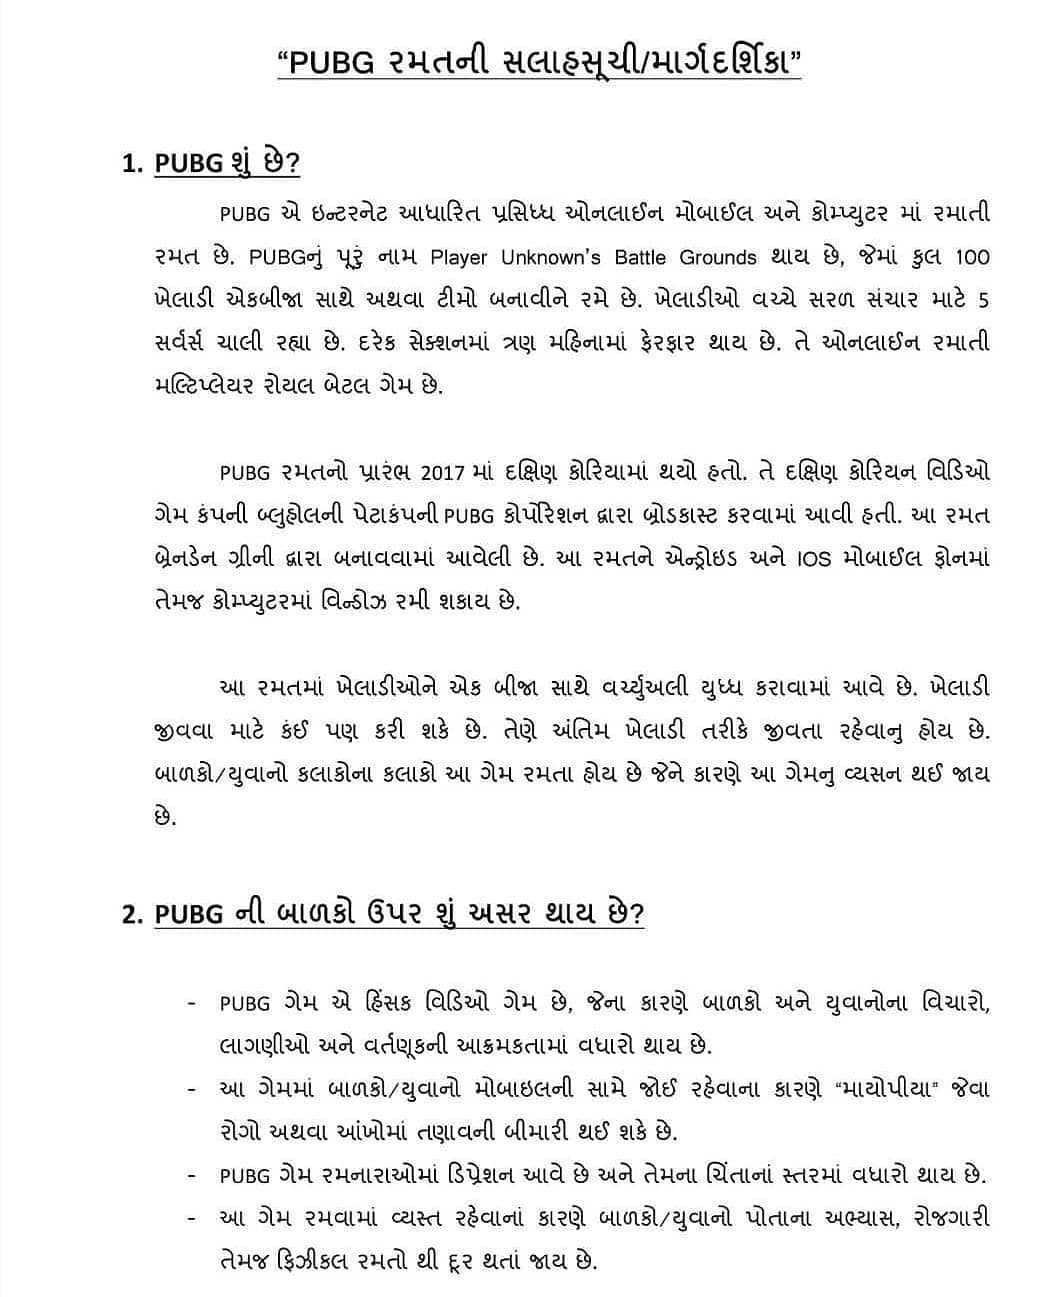 PUBG શું છે? બાળકો ઉપર એની અસર શું થાય? Source: @ahmedabadpolice  #swipeleft #pubg #pubgban #gujarat #ahmedabad #amdavad #game #mobile #mobilegame #addiction #addicted